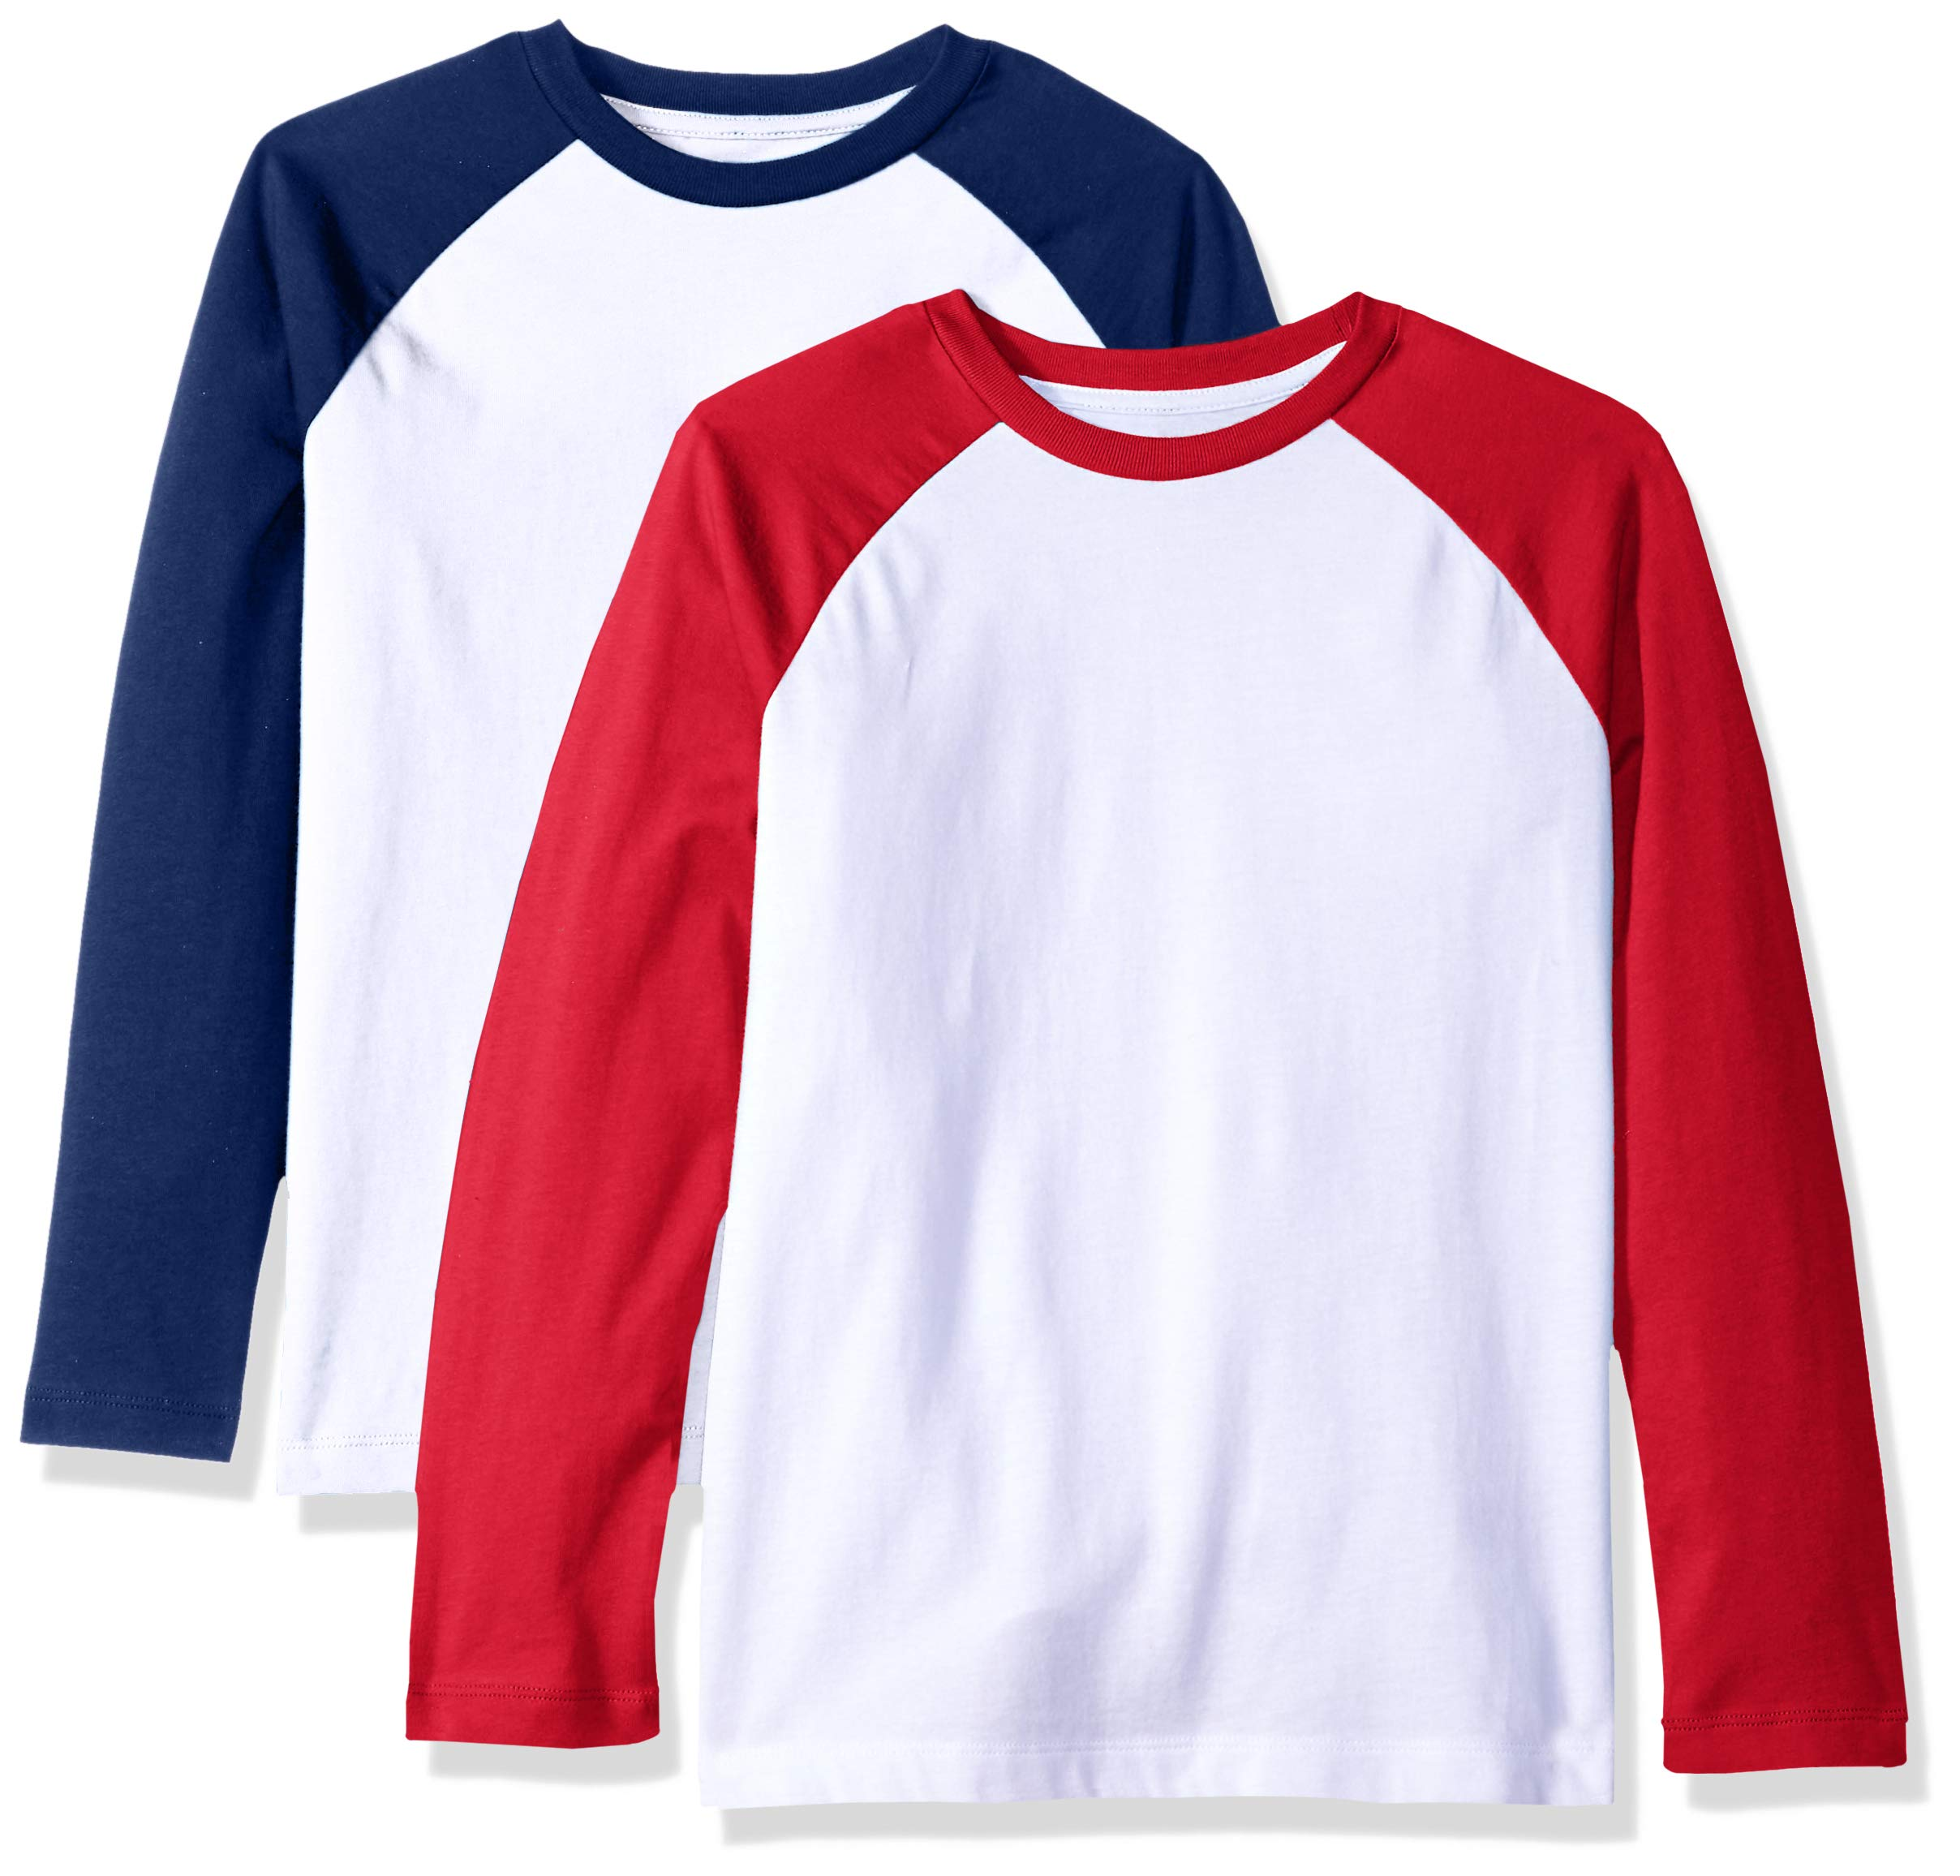 Cerulean with Blue Depths White with Pomegranate Sleeve X-Large Essentials Big Boys 2-Pack Raglan Tee